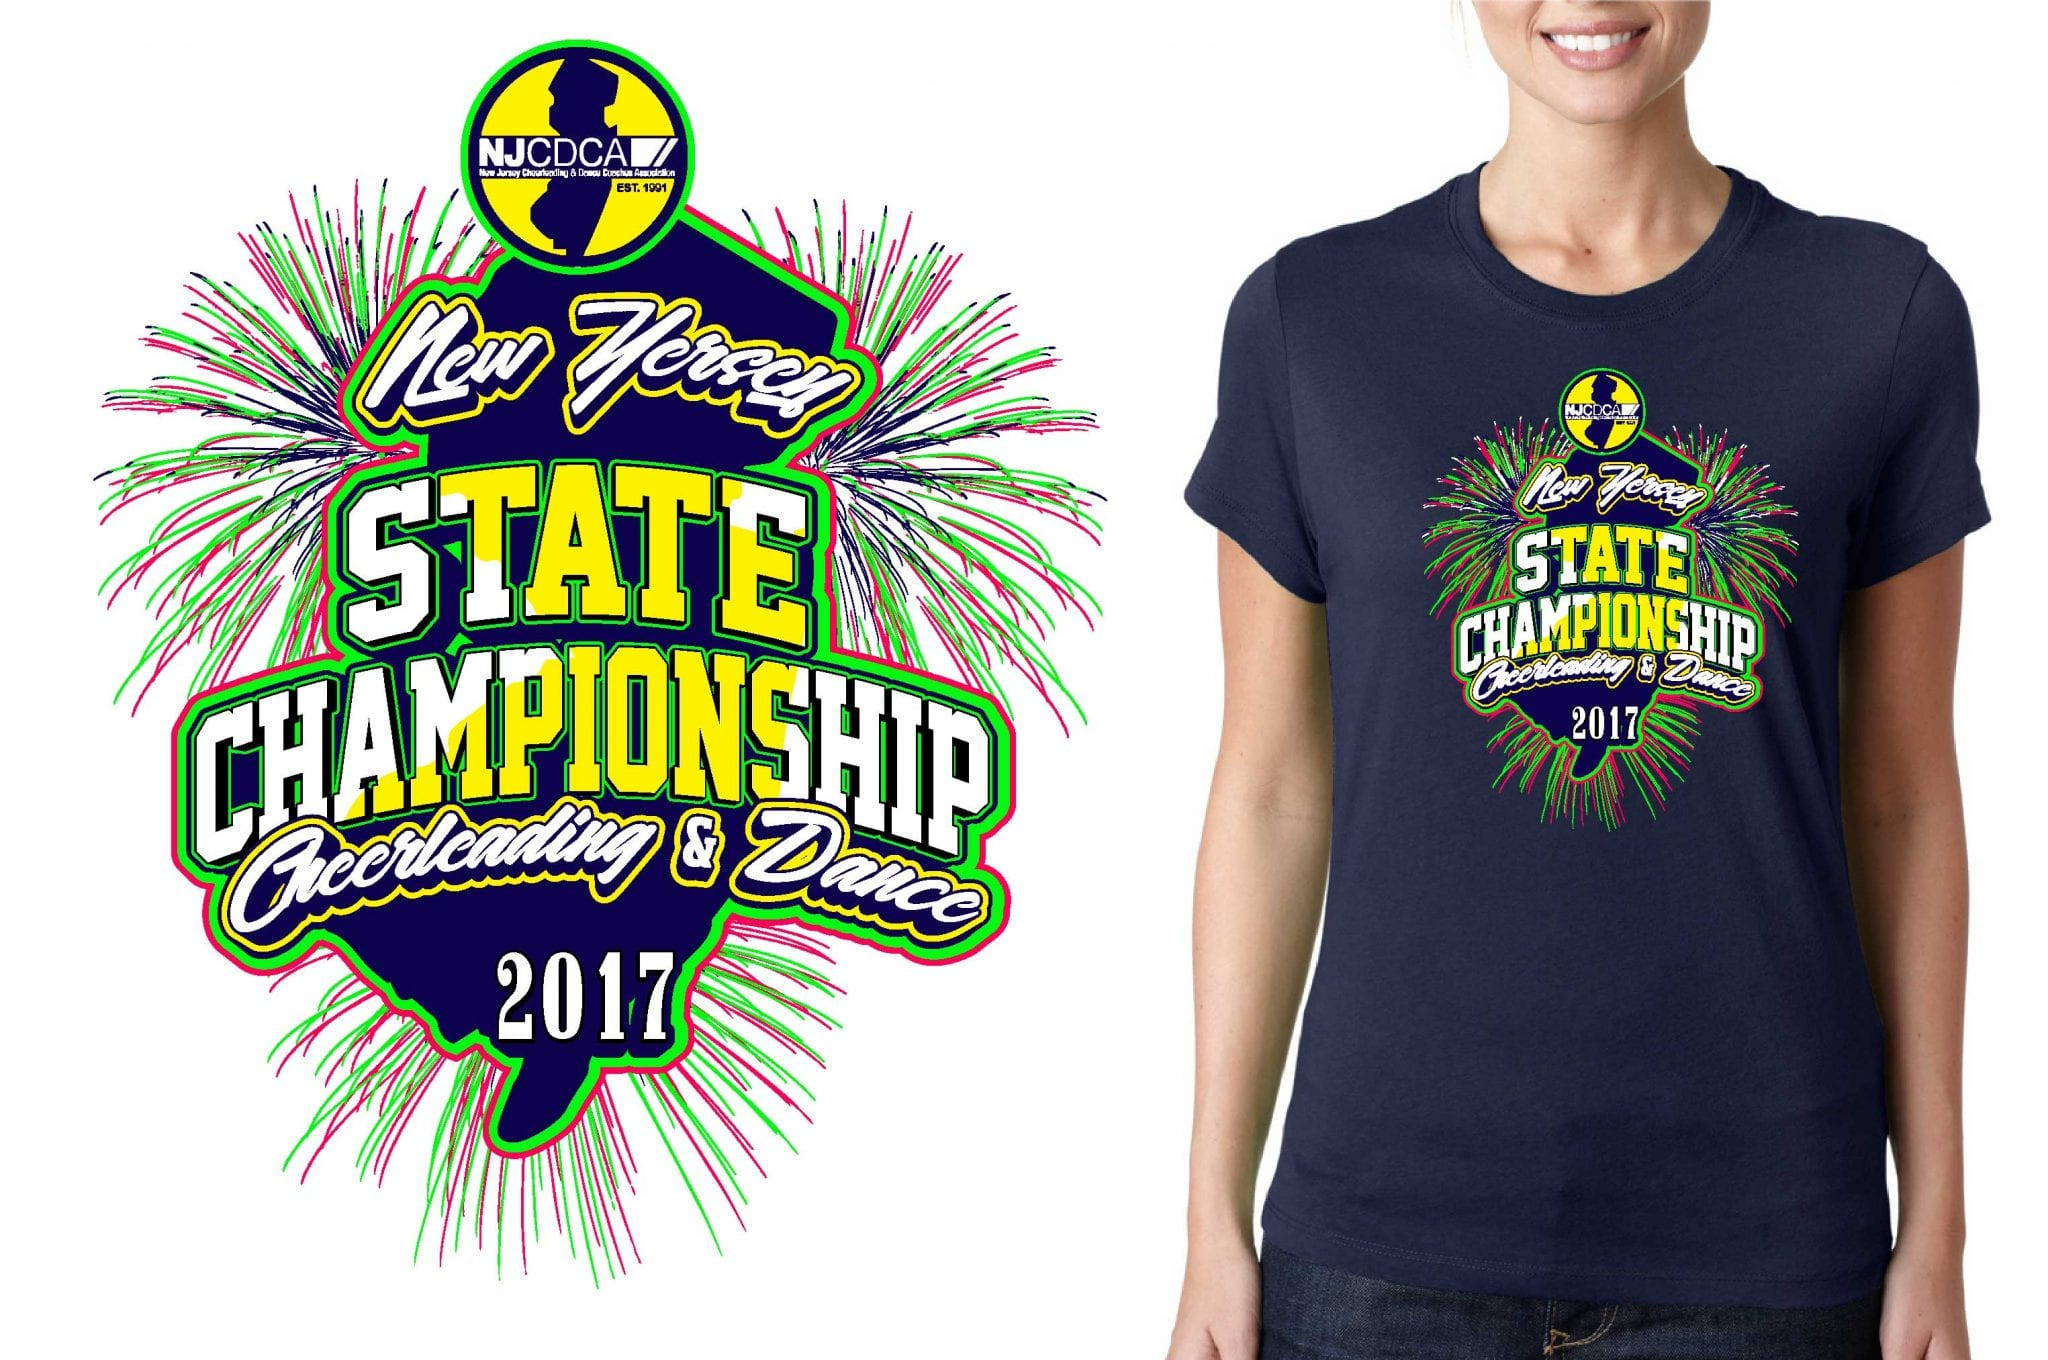 TSHIRT LOGO DESIGN NJCDCA-State-Cheerleading-Dance-Recreation-Championships UrArtStudio